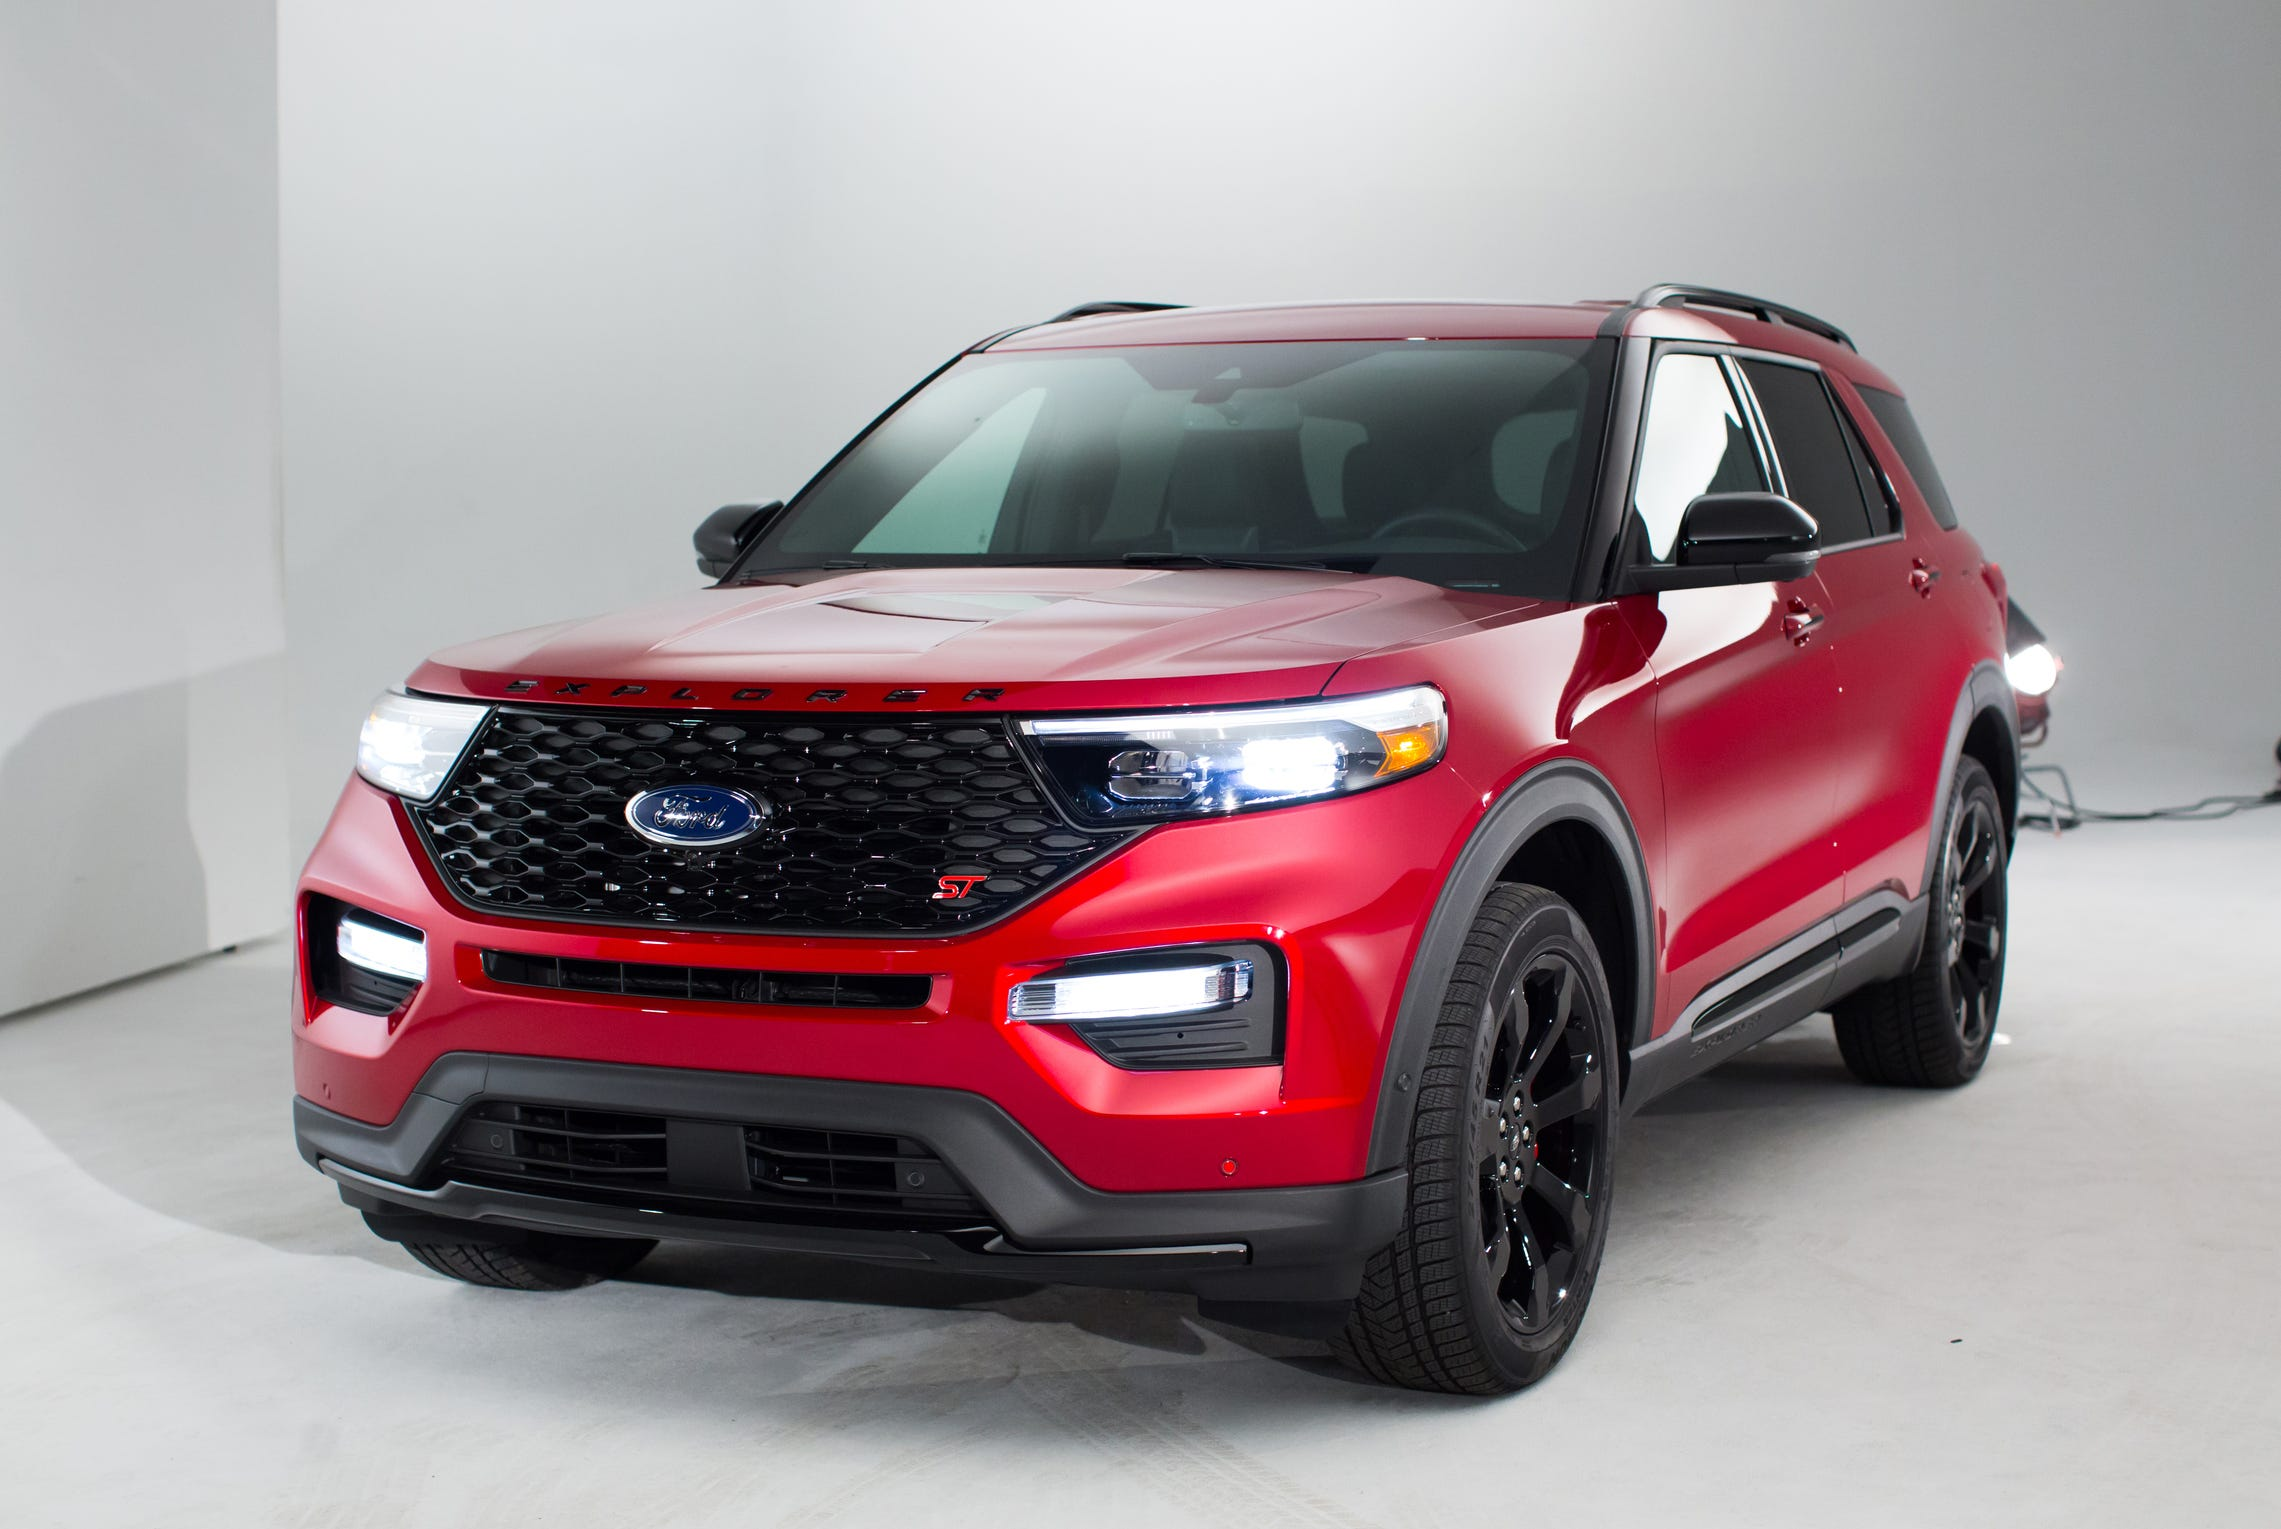 2020 ford explorer reveal  what u0026 39 s different about new model